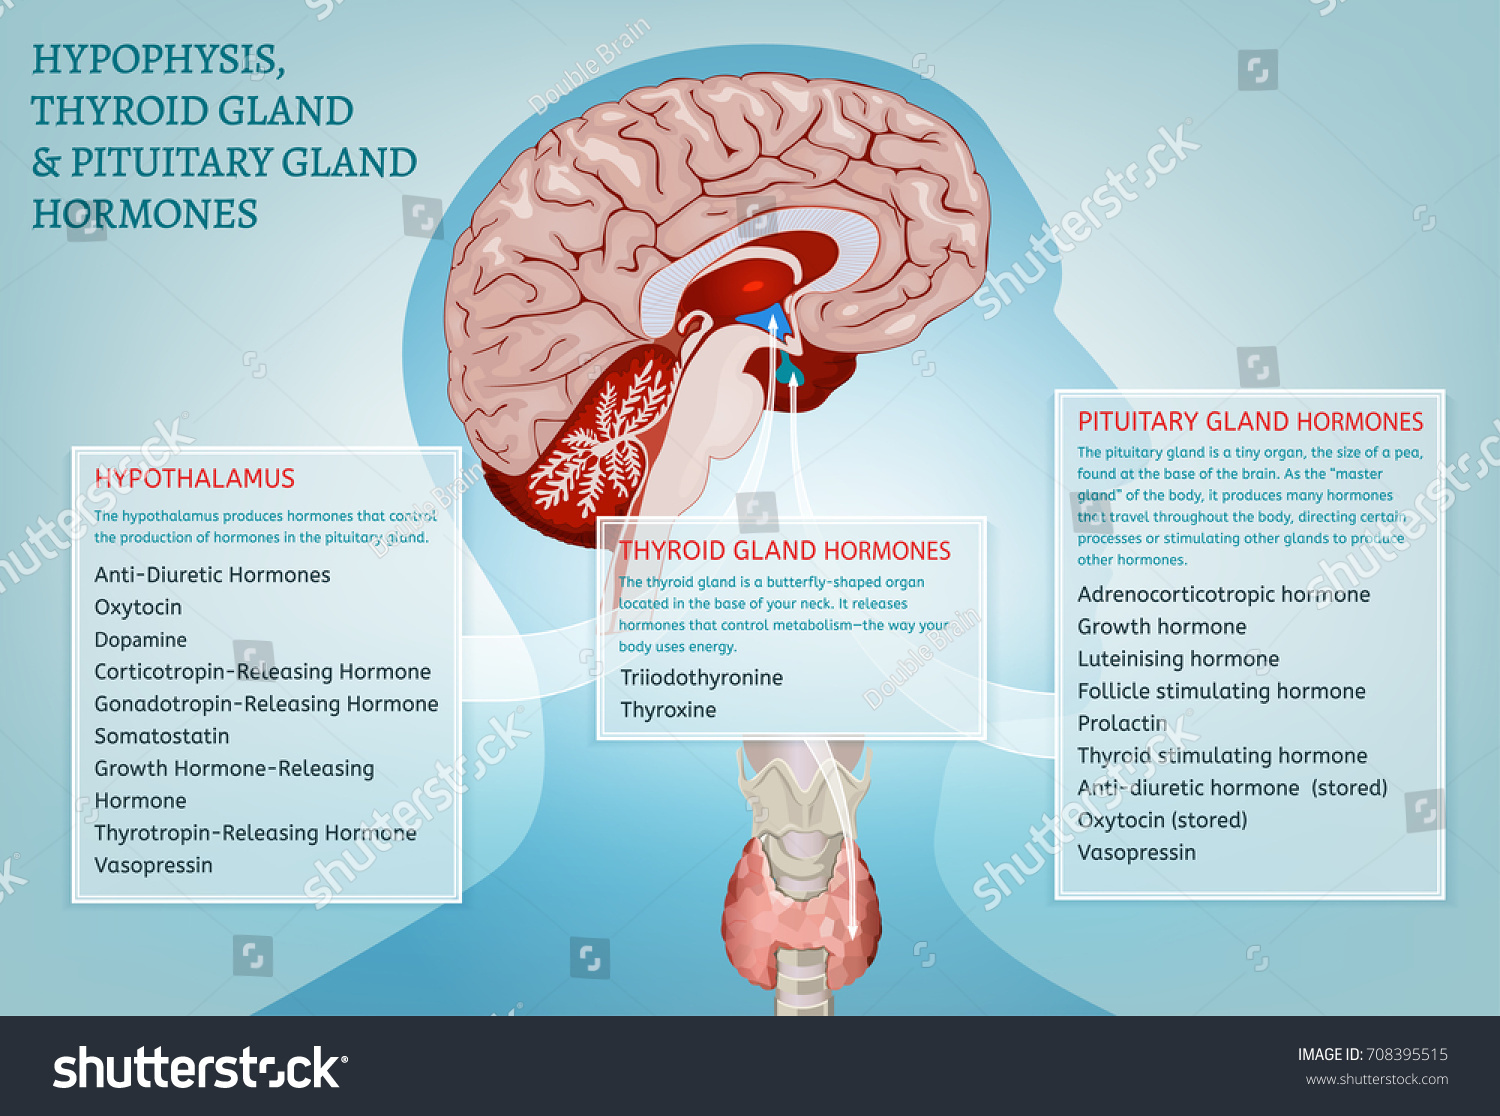 Hypophysis Pituitary Thyroid Gland Hormones Infographic Stock